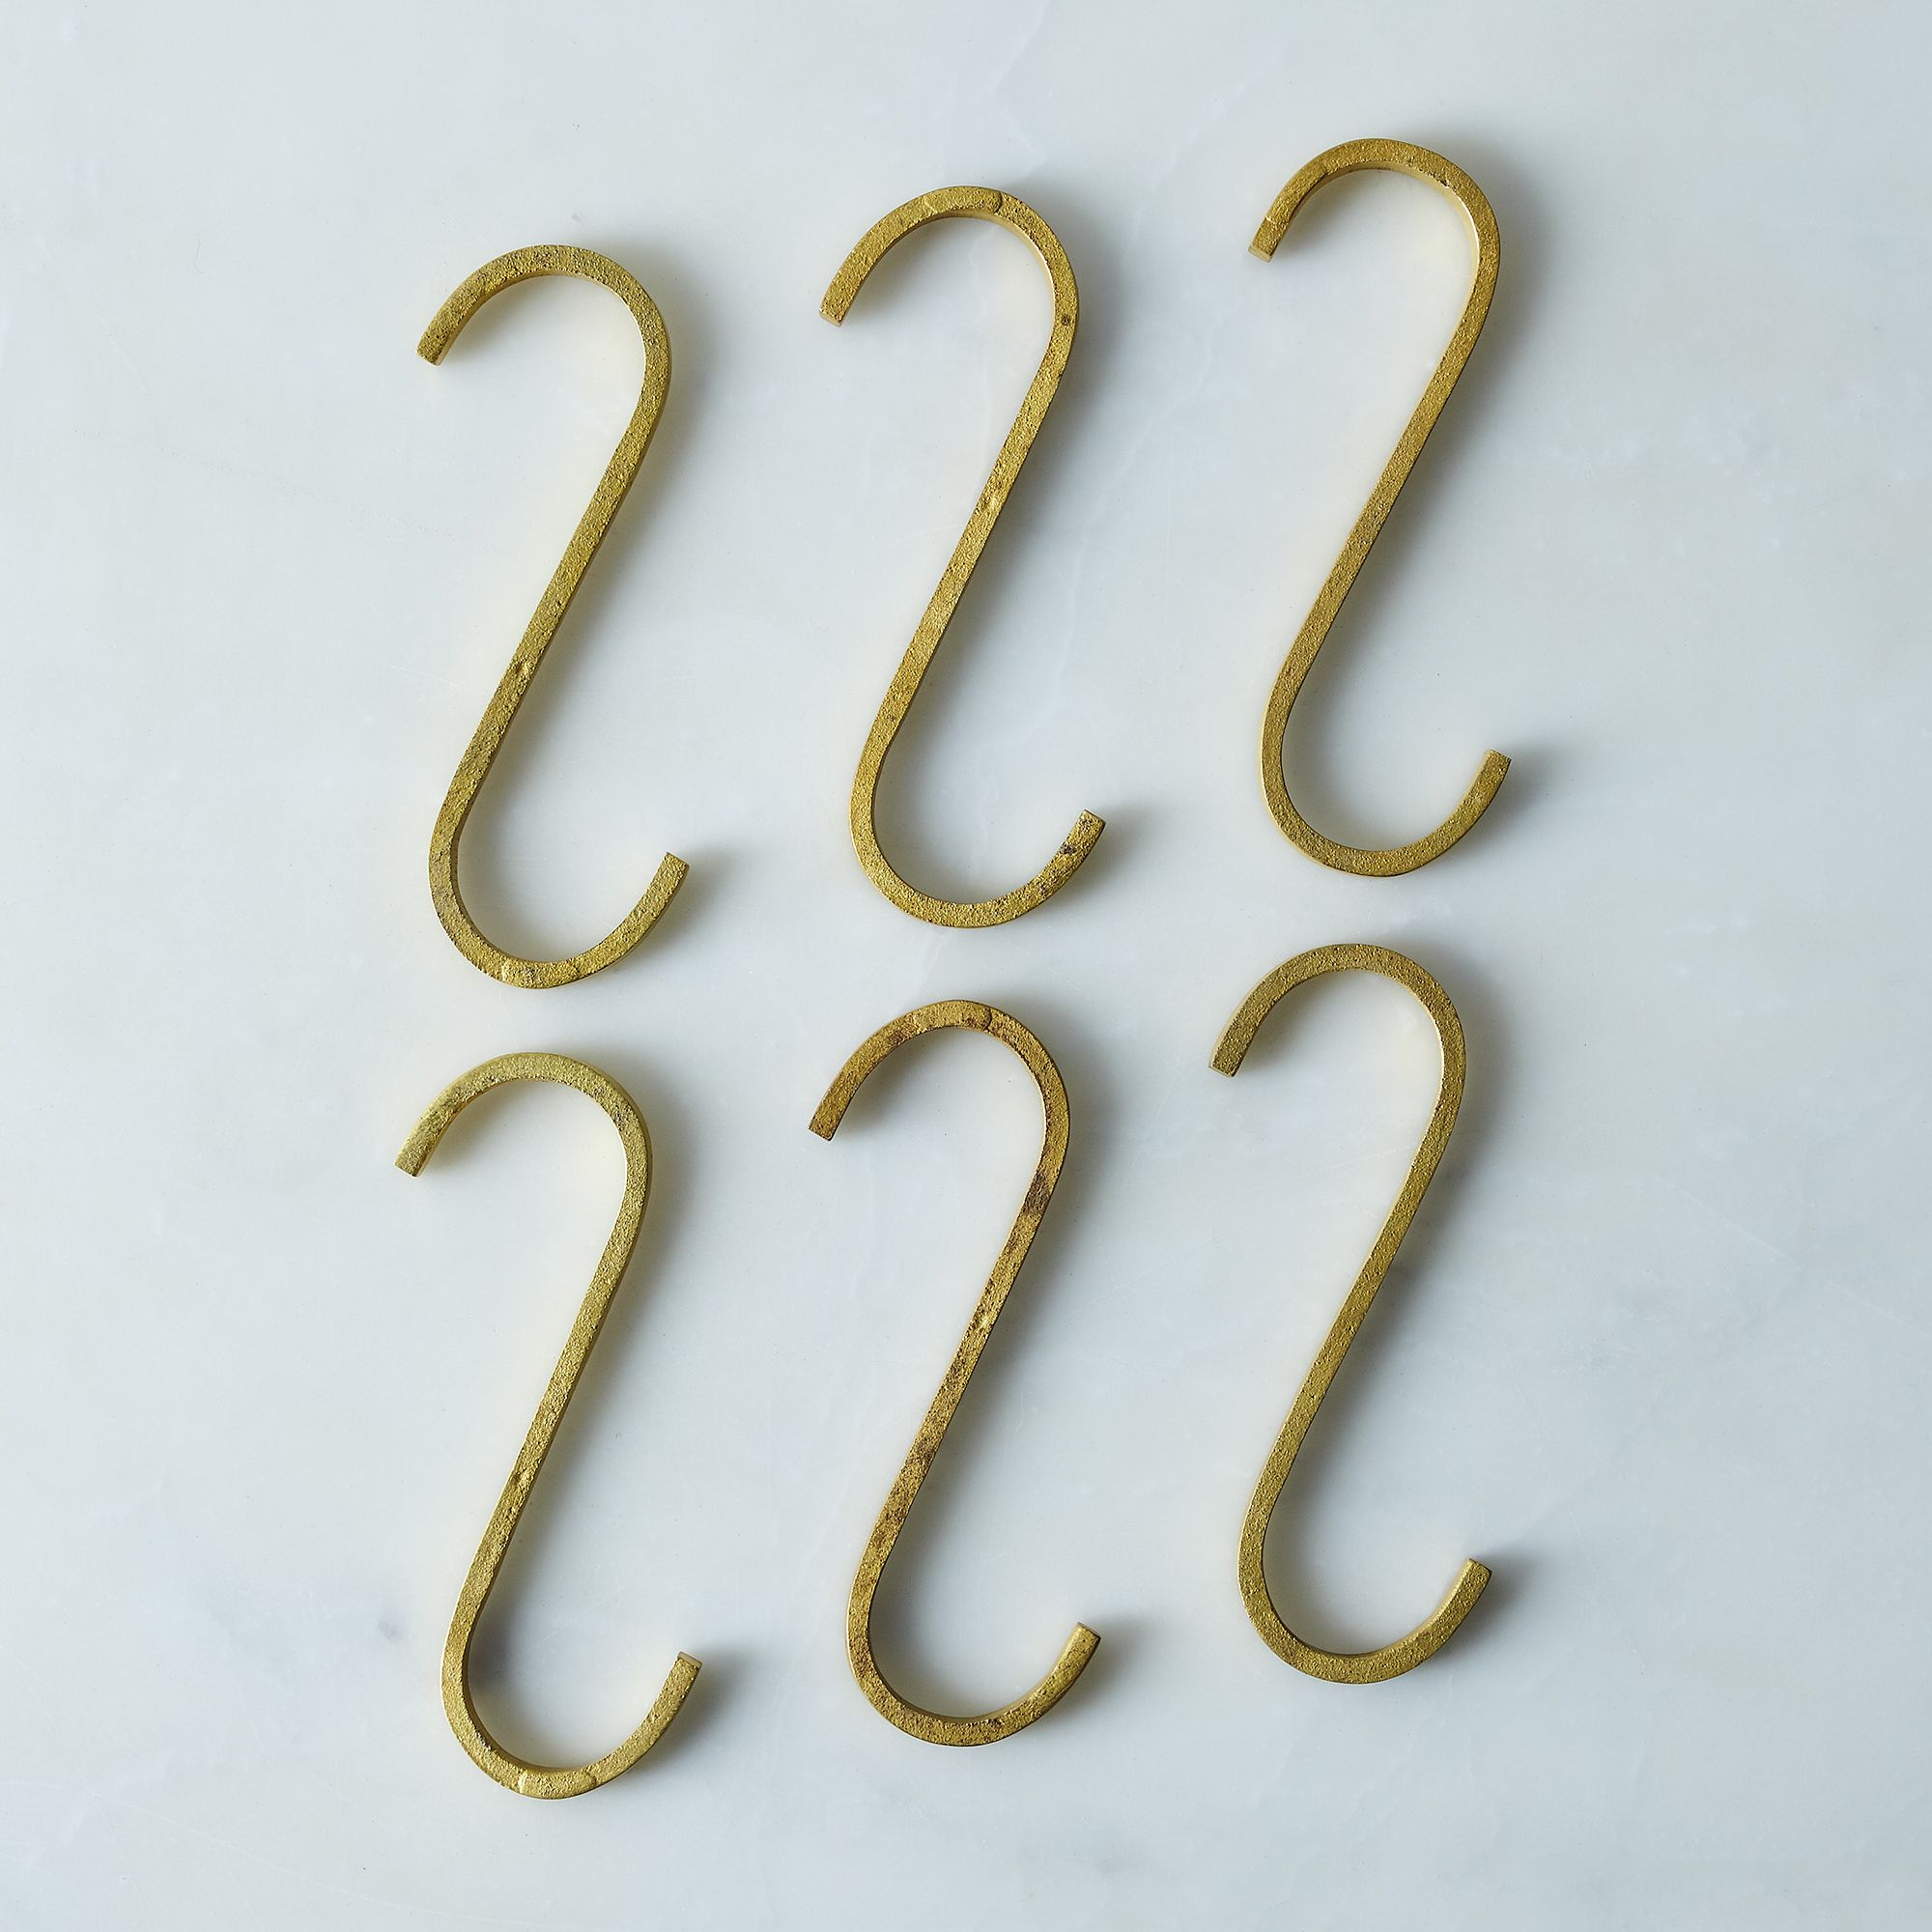 855c2de2 1322 4c95 9797 f21a3289f149  2017 0121 sir madam brass s hooks set of 6 silo rocky luten 024